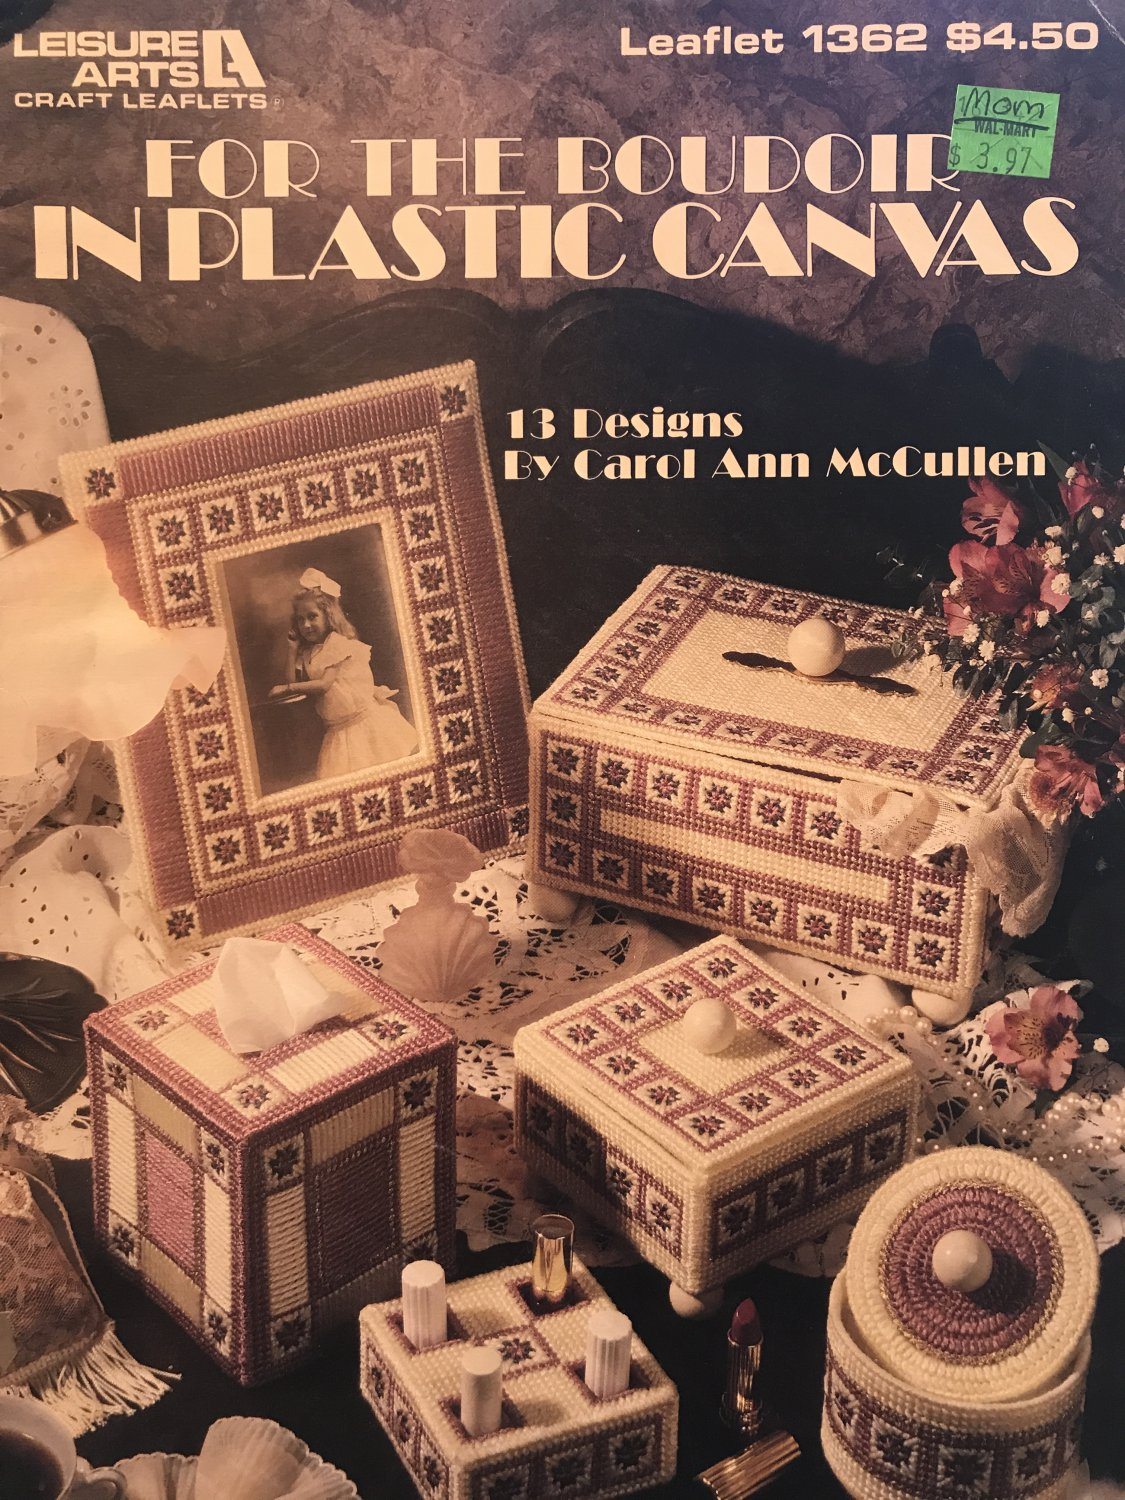 For the Boudoir in Plastic Canvas Leisure Arts Leaflet 1362